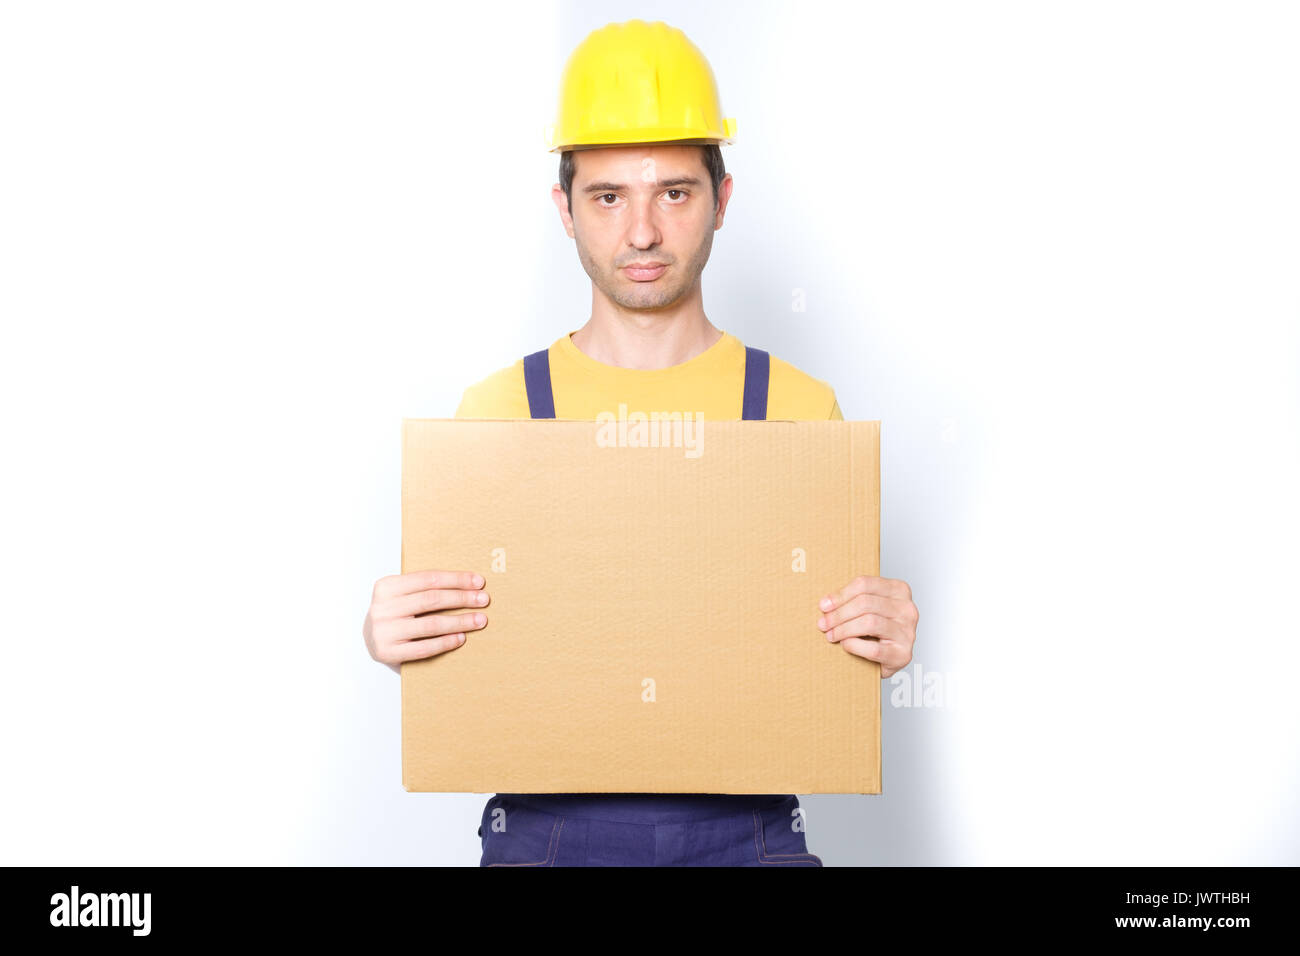 Sad worker holding a cardboard isolated on white background - Stock Image